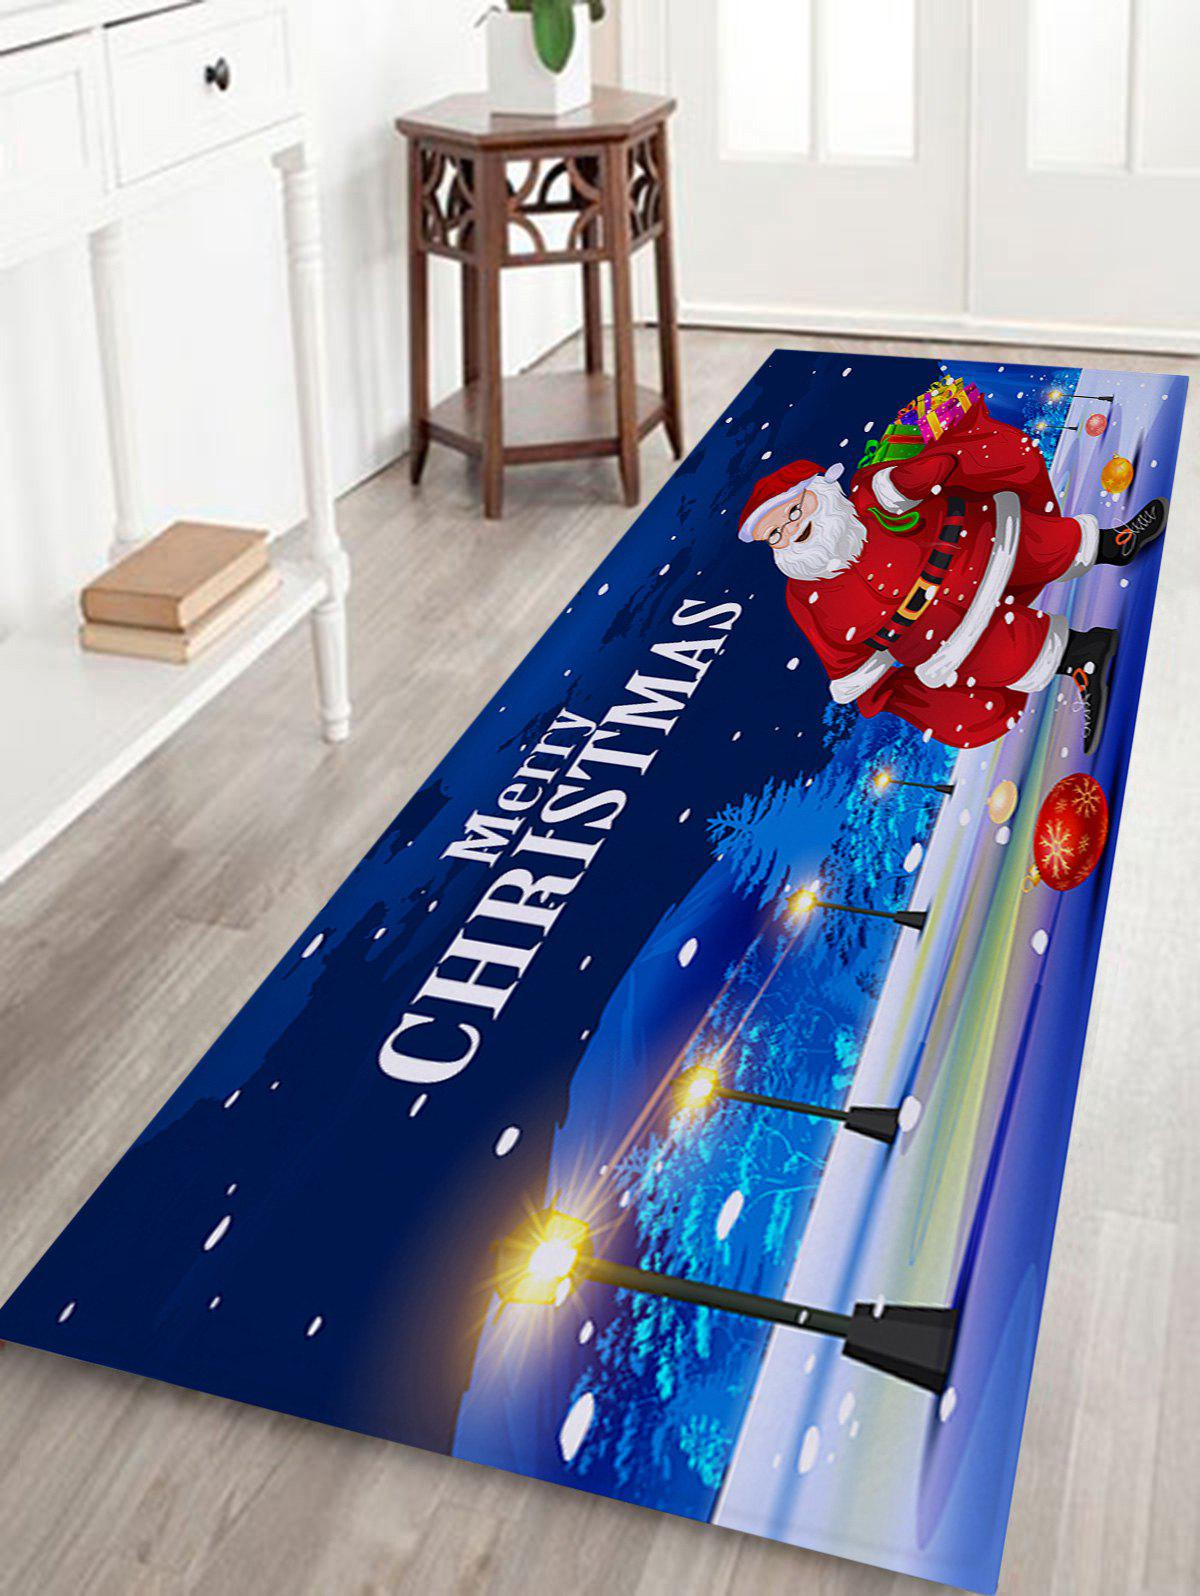 Santa Claus Pattern Coral Fleece Nonslip Christmas Bath MatHOME<br><br>Size: W24 INCH * L71 INCH; Color: BLUE; Products Type: Bath rugs; Materials: Coral FLeece; Pattern: Letter,Santa Claus; Style: Festival; Shape: Rectangular; Package Contents: 1 x Rug;